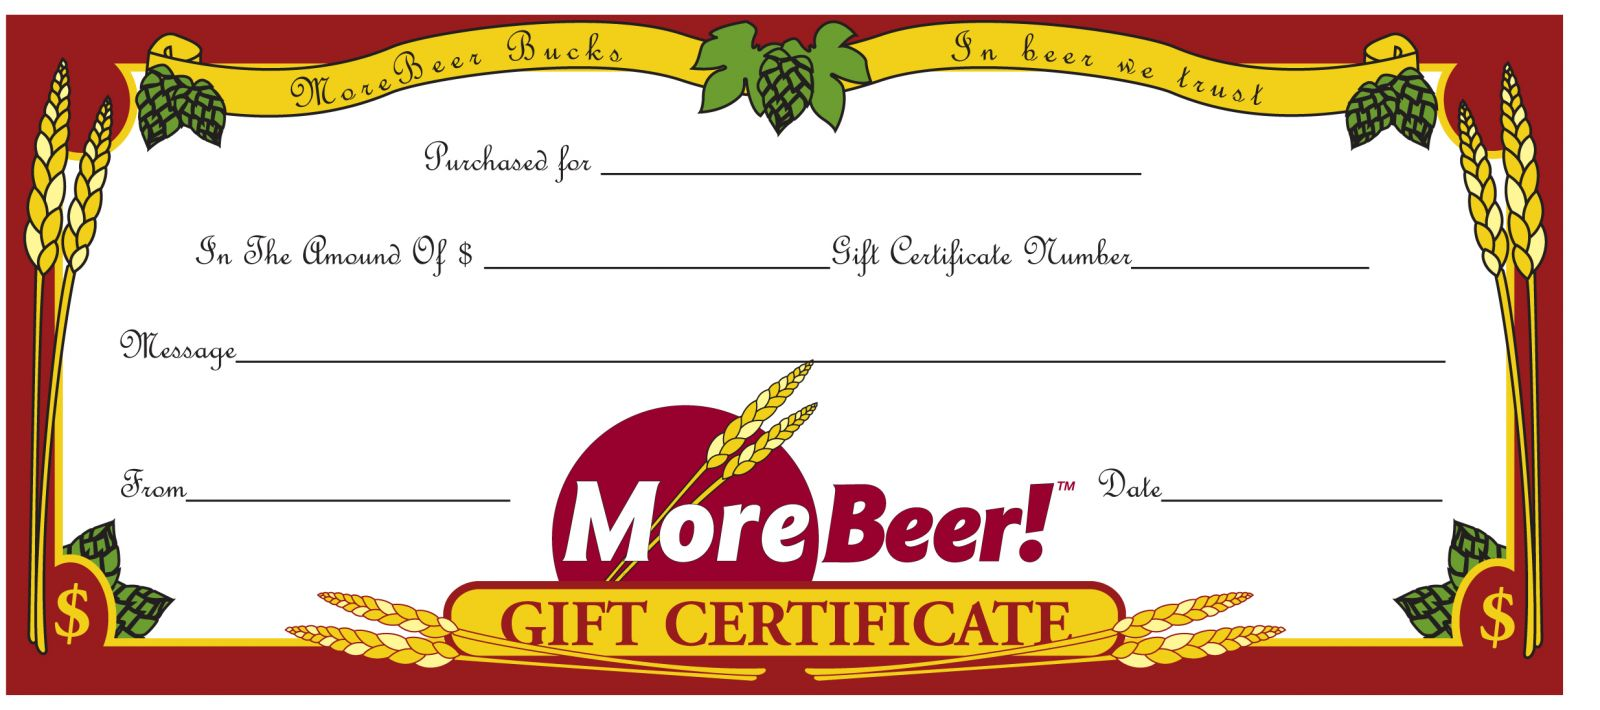 holiday gift certificate landing page morebeer gift certificate print a copy or email it directly to the recipient